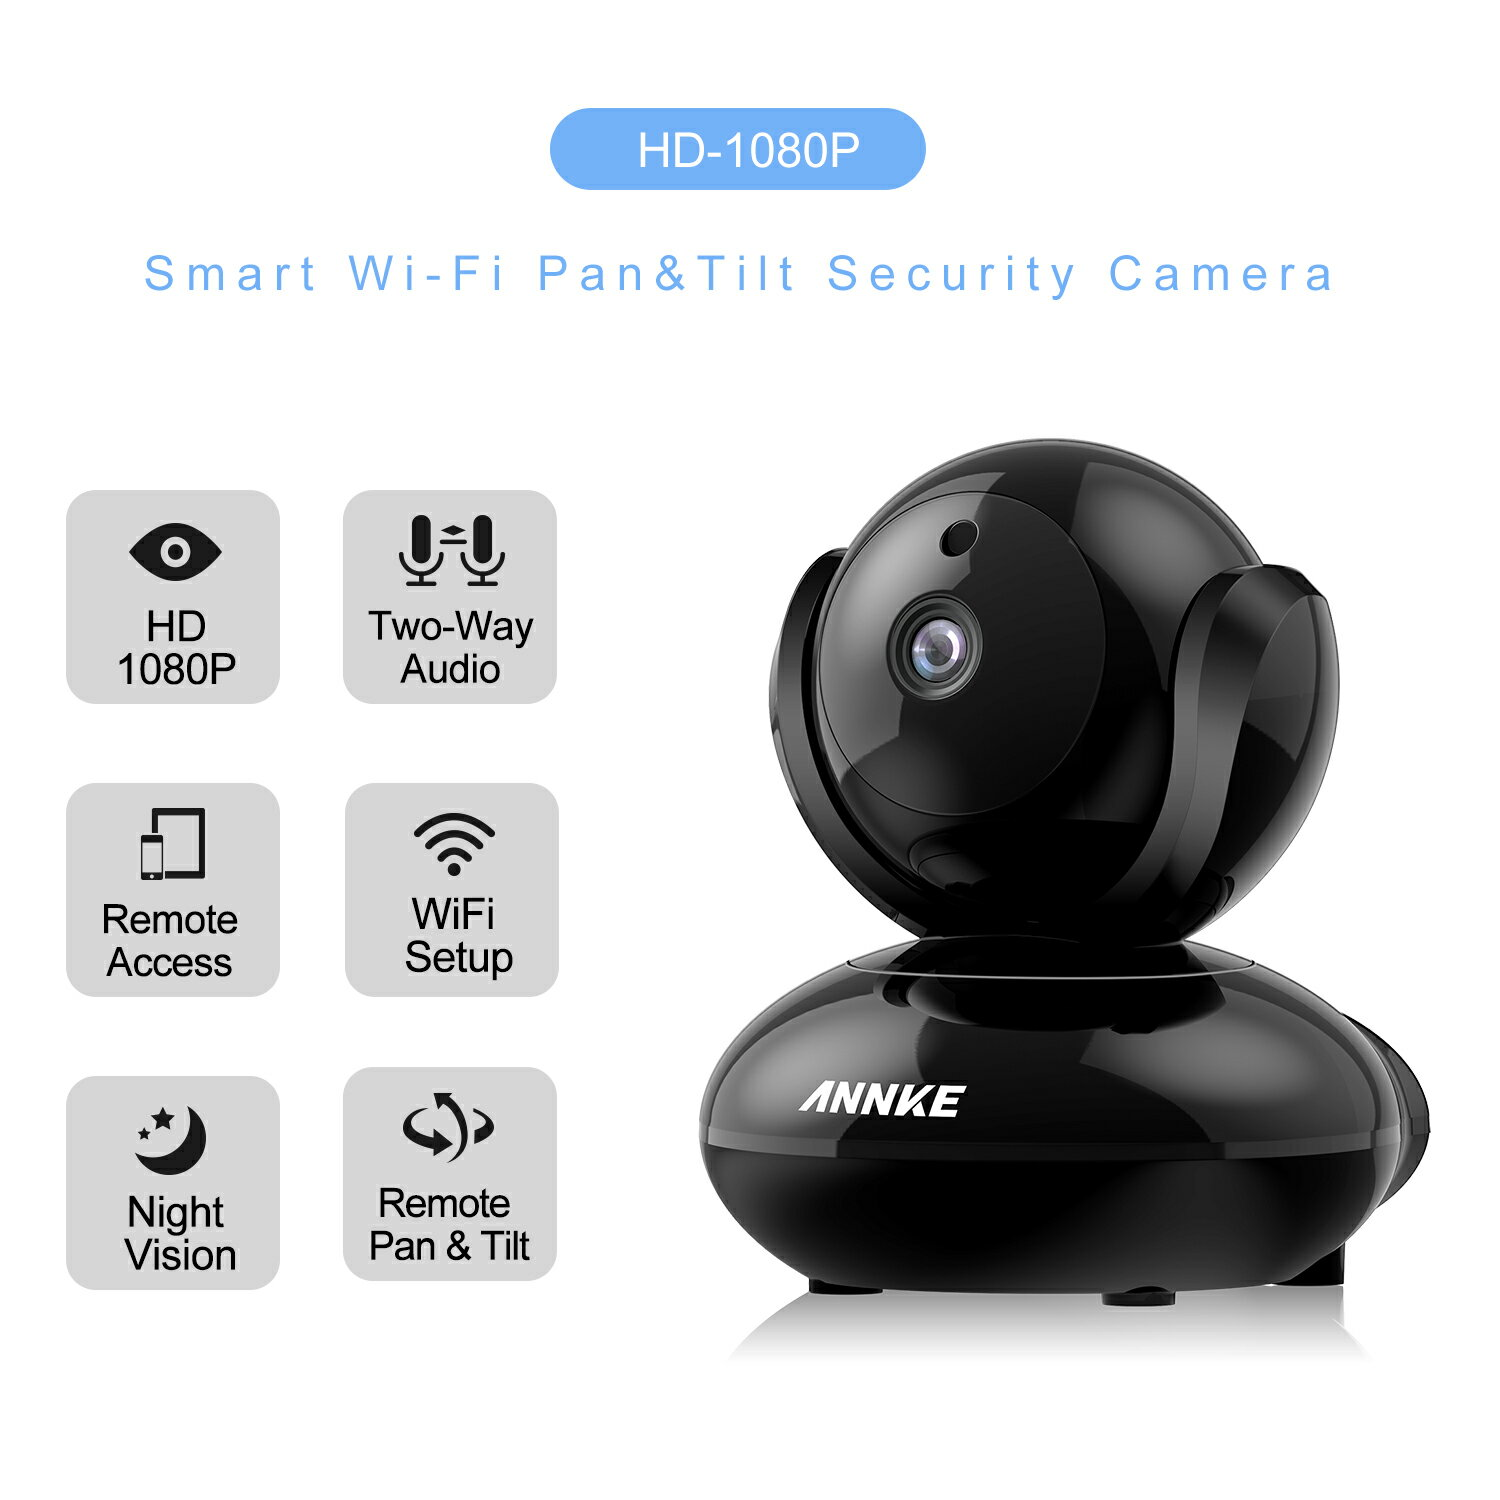 ANNKE HD 1080P WiFi Video Monitoring Security Wireless IP Camera with  Pan/Tilt, Two-Way Audio, Plug & Play Setup, Optional Cloud Recording, Full  HD